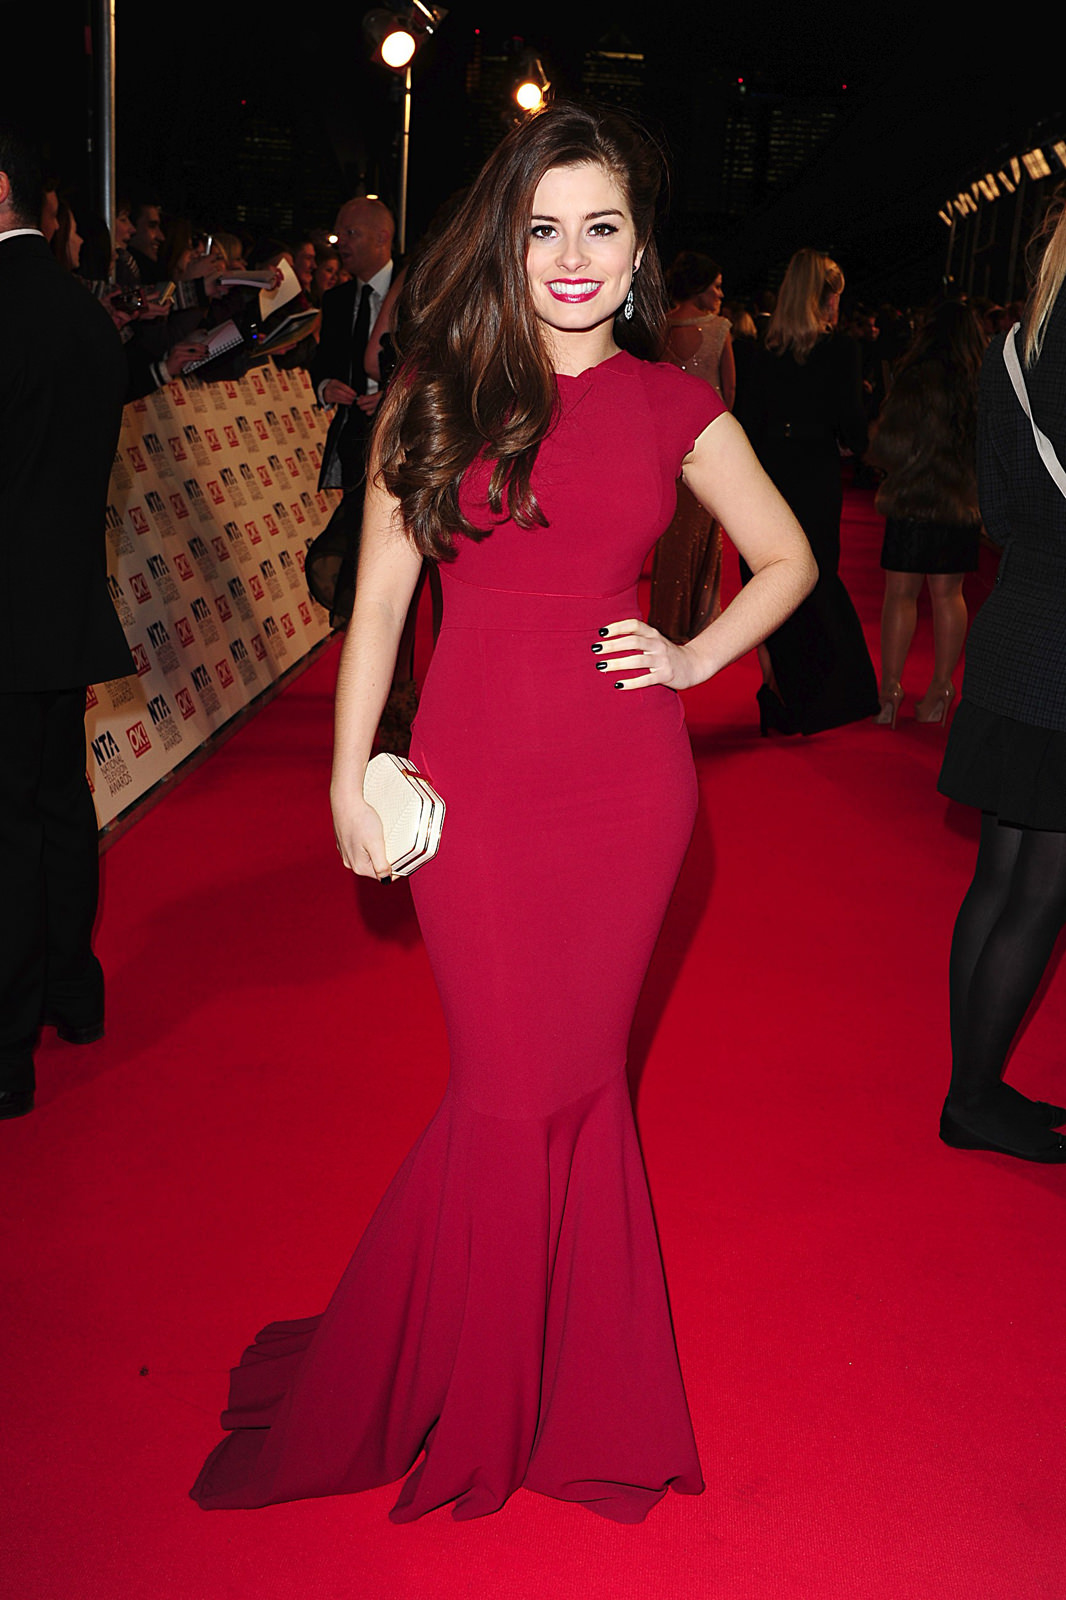 Rachel Shenton Photo Gallery